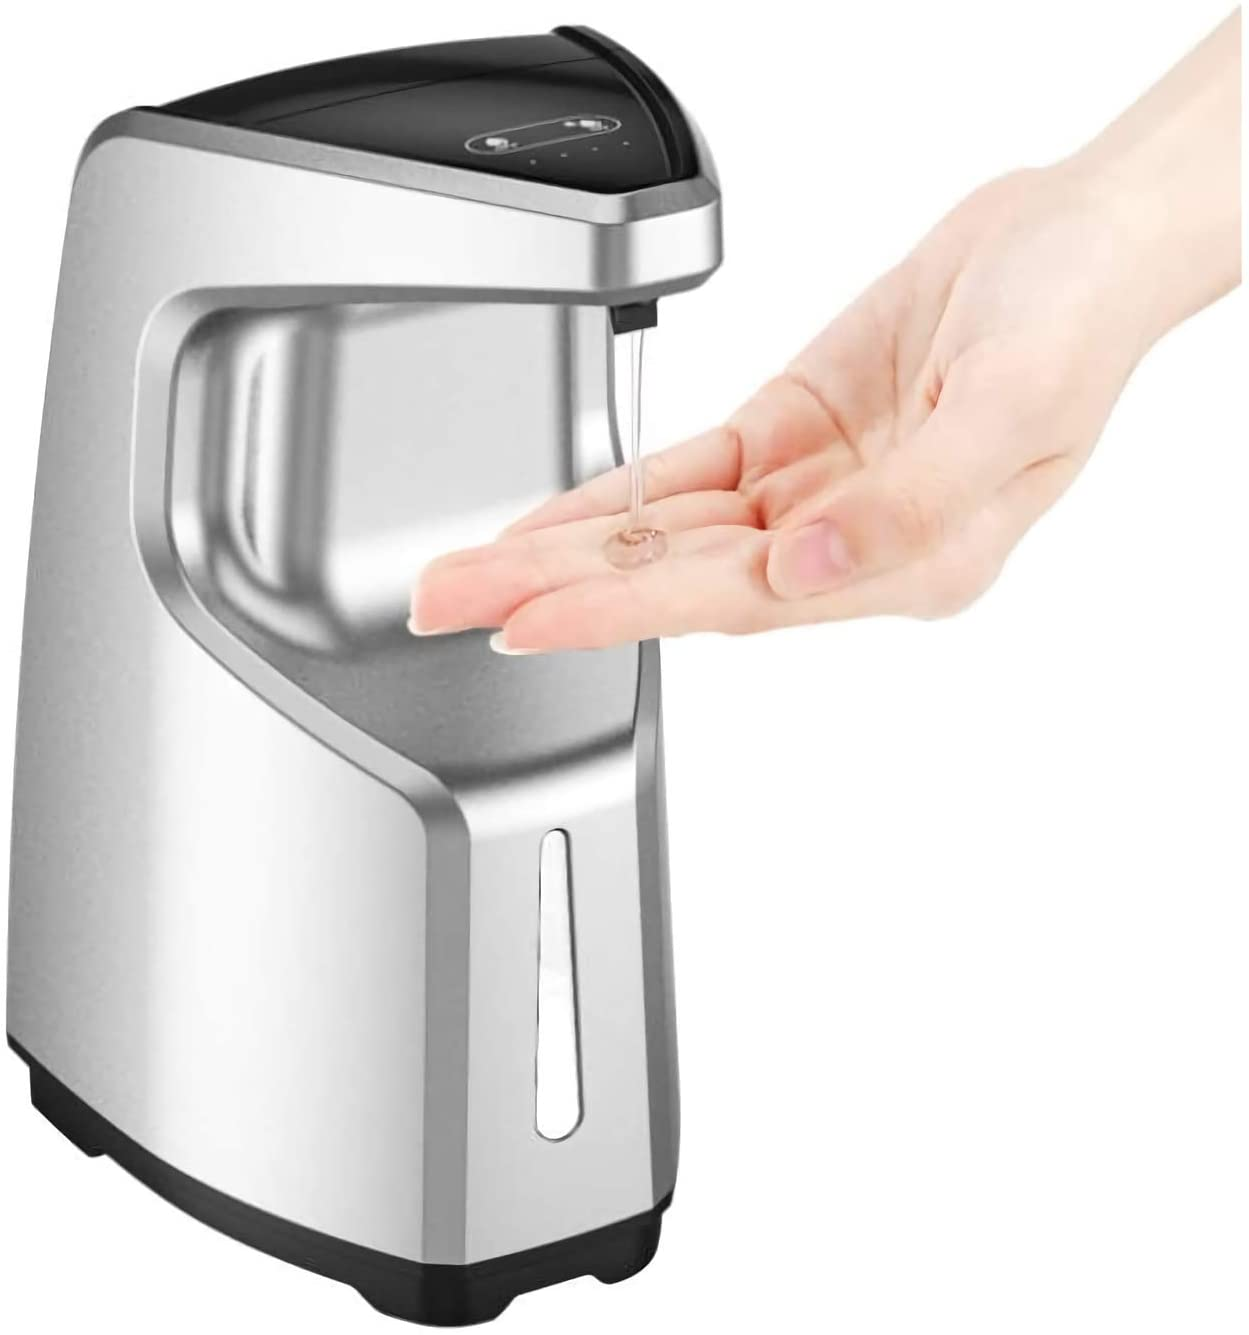 SADALAK Automatic Soap Dispenser Touchless Automatic Hand Sanitizer Dispenser Countertop/Wall Mounted 450 ML Soap Dispenser for Bathroom Kitchen Offic